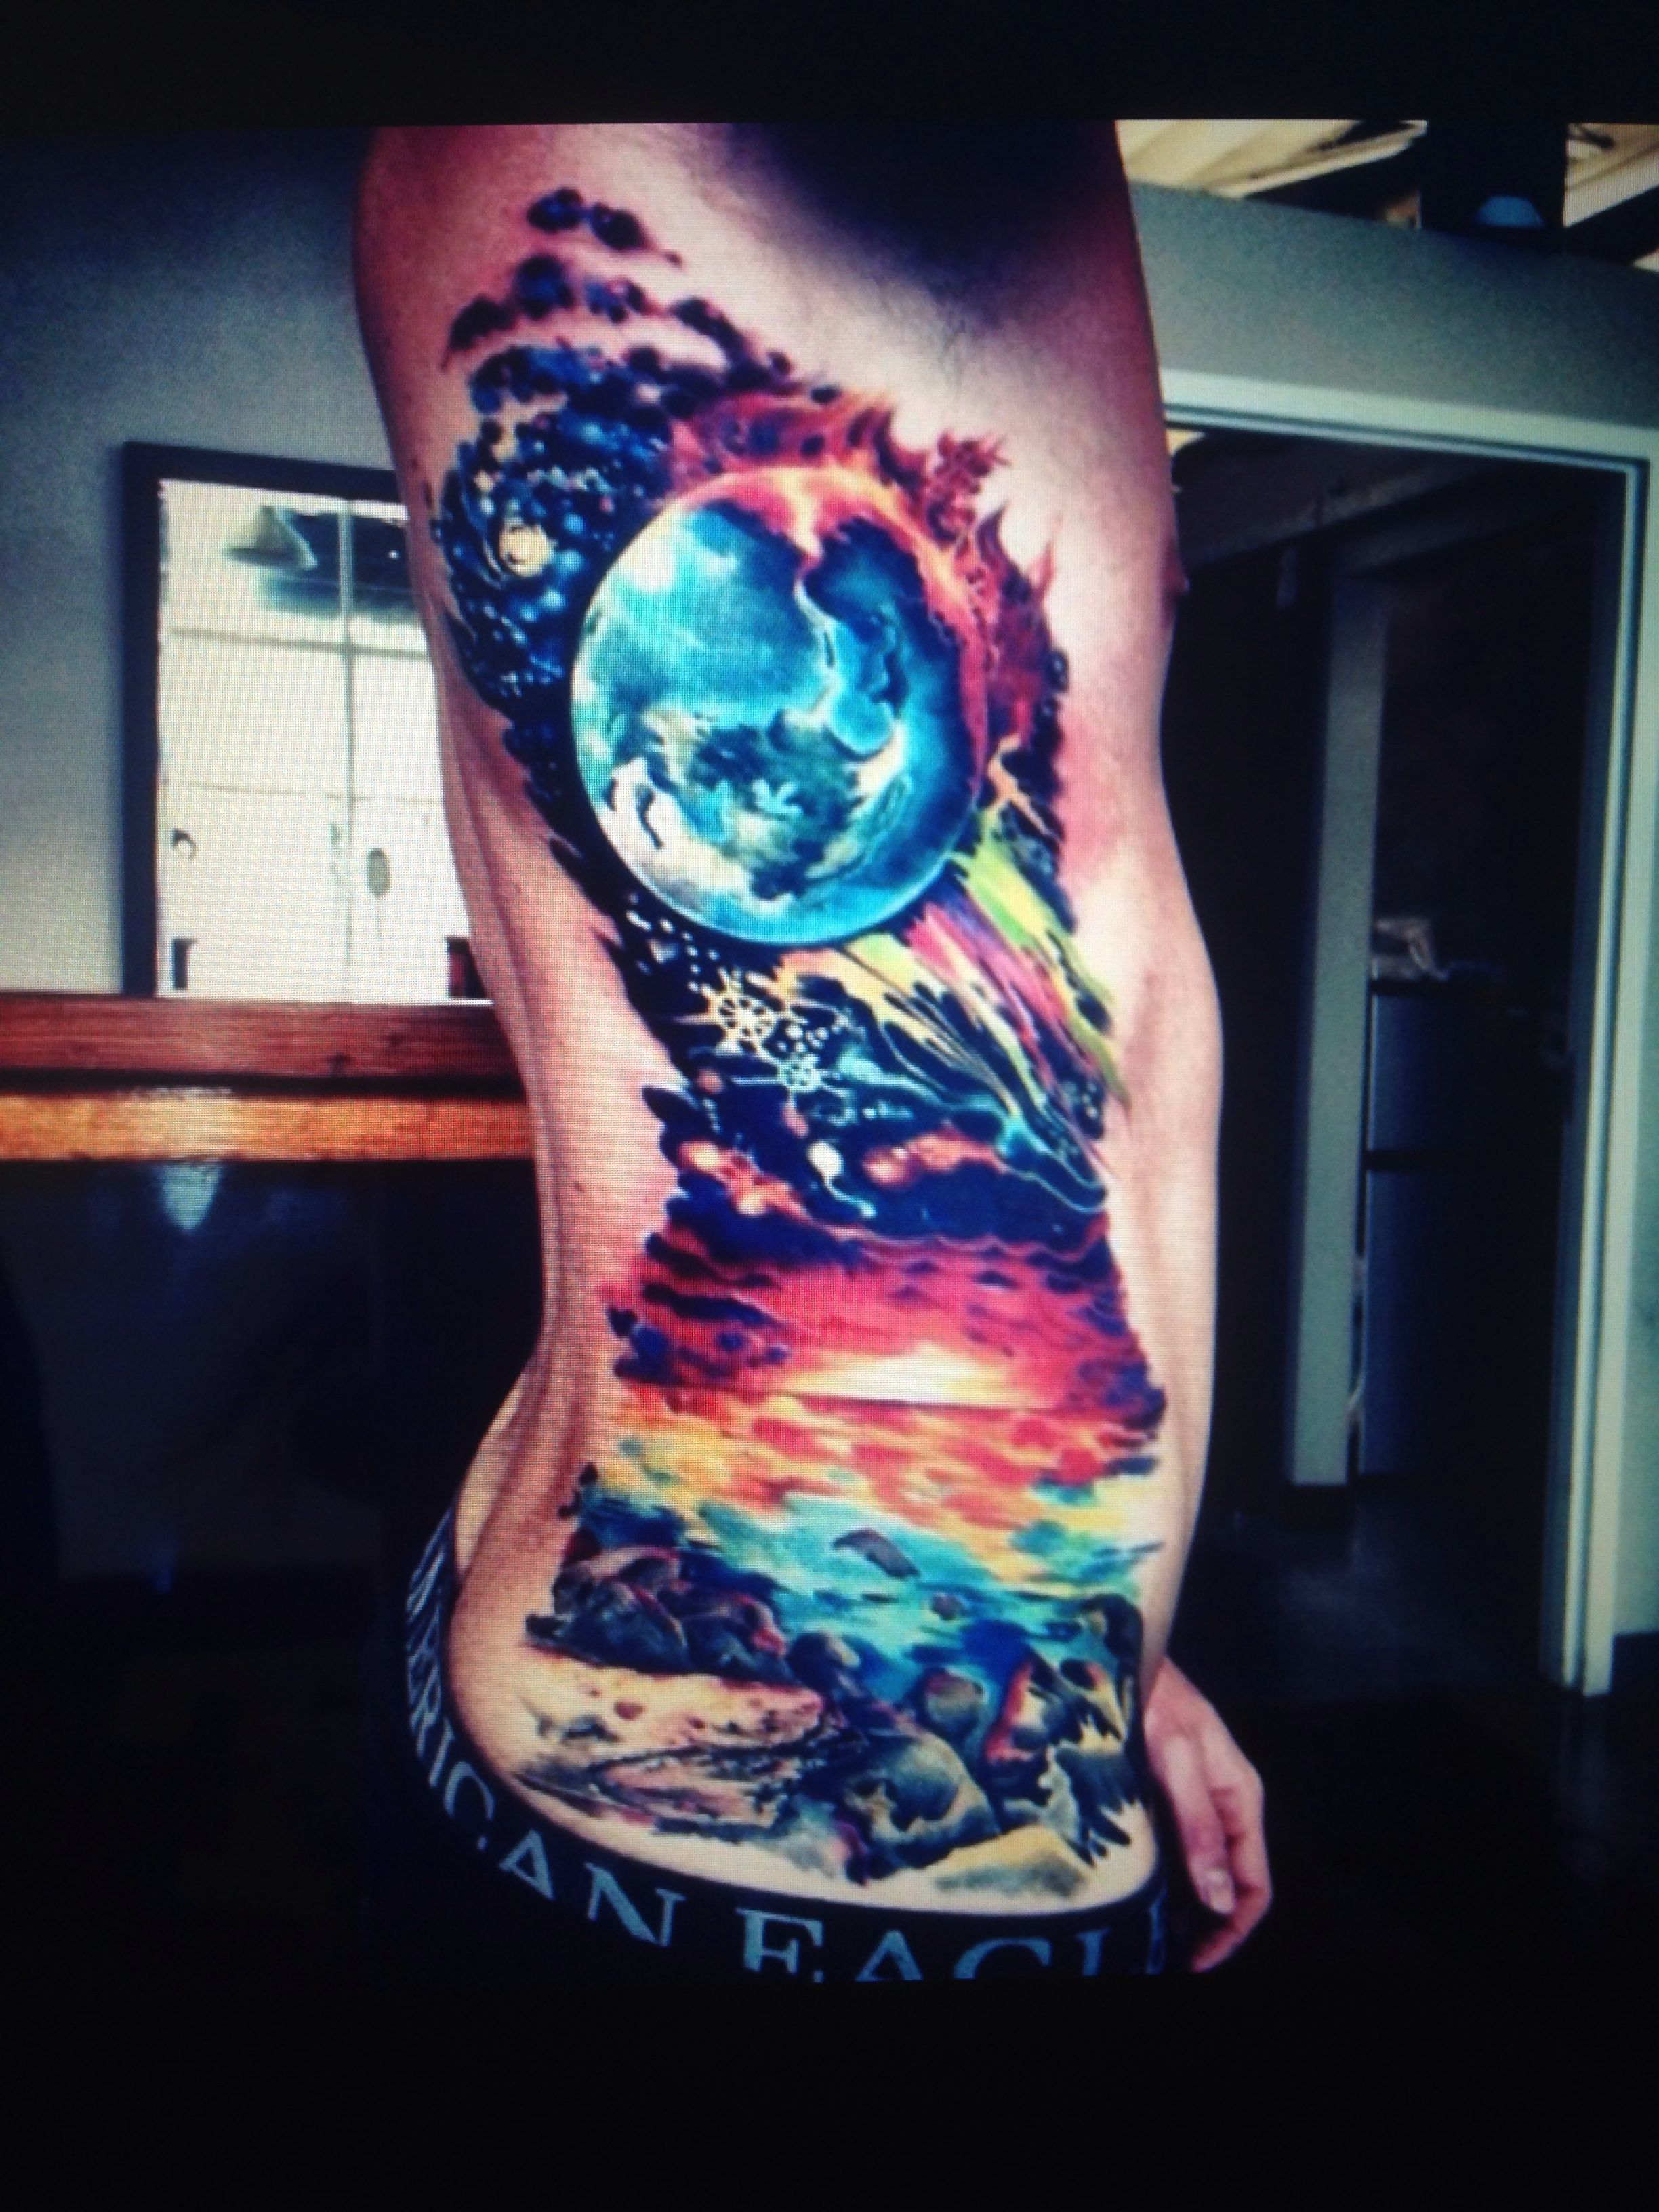 Silo Tattoos Incredible Body Art Masterpieces That Look: My Cousin Danny's Recent Tat.